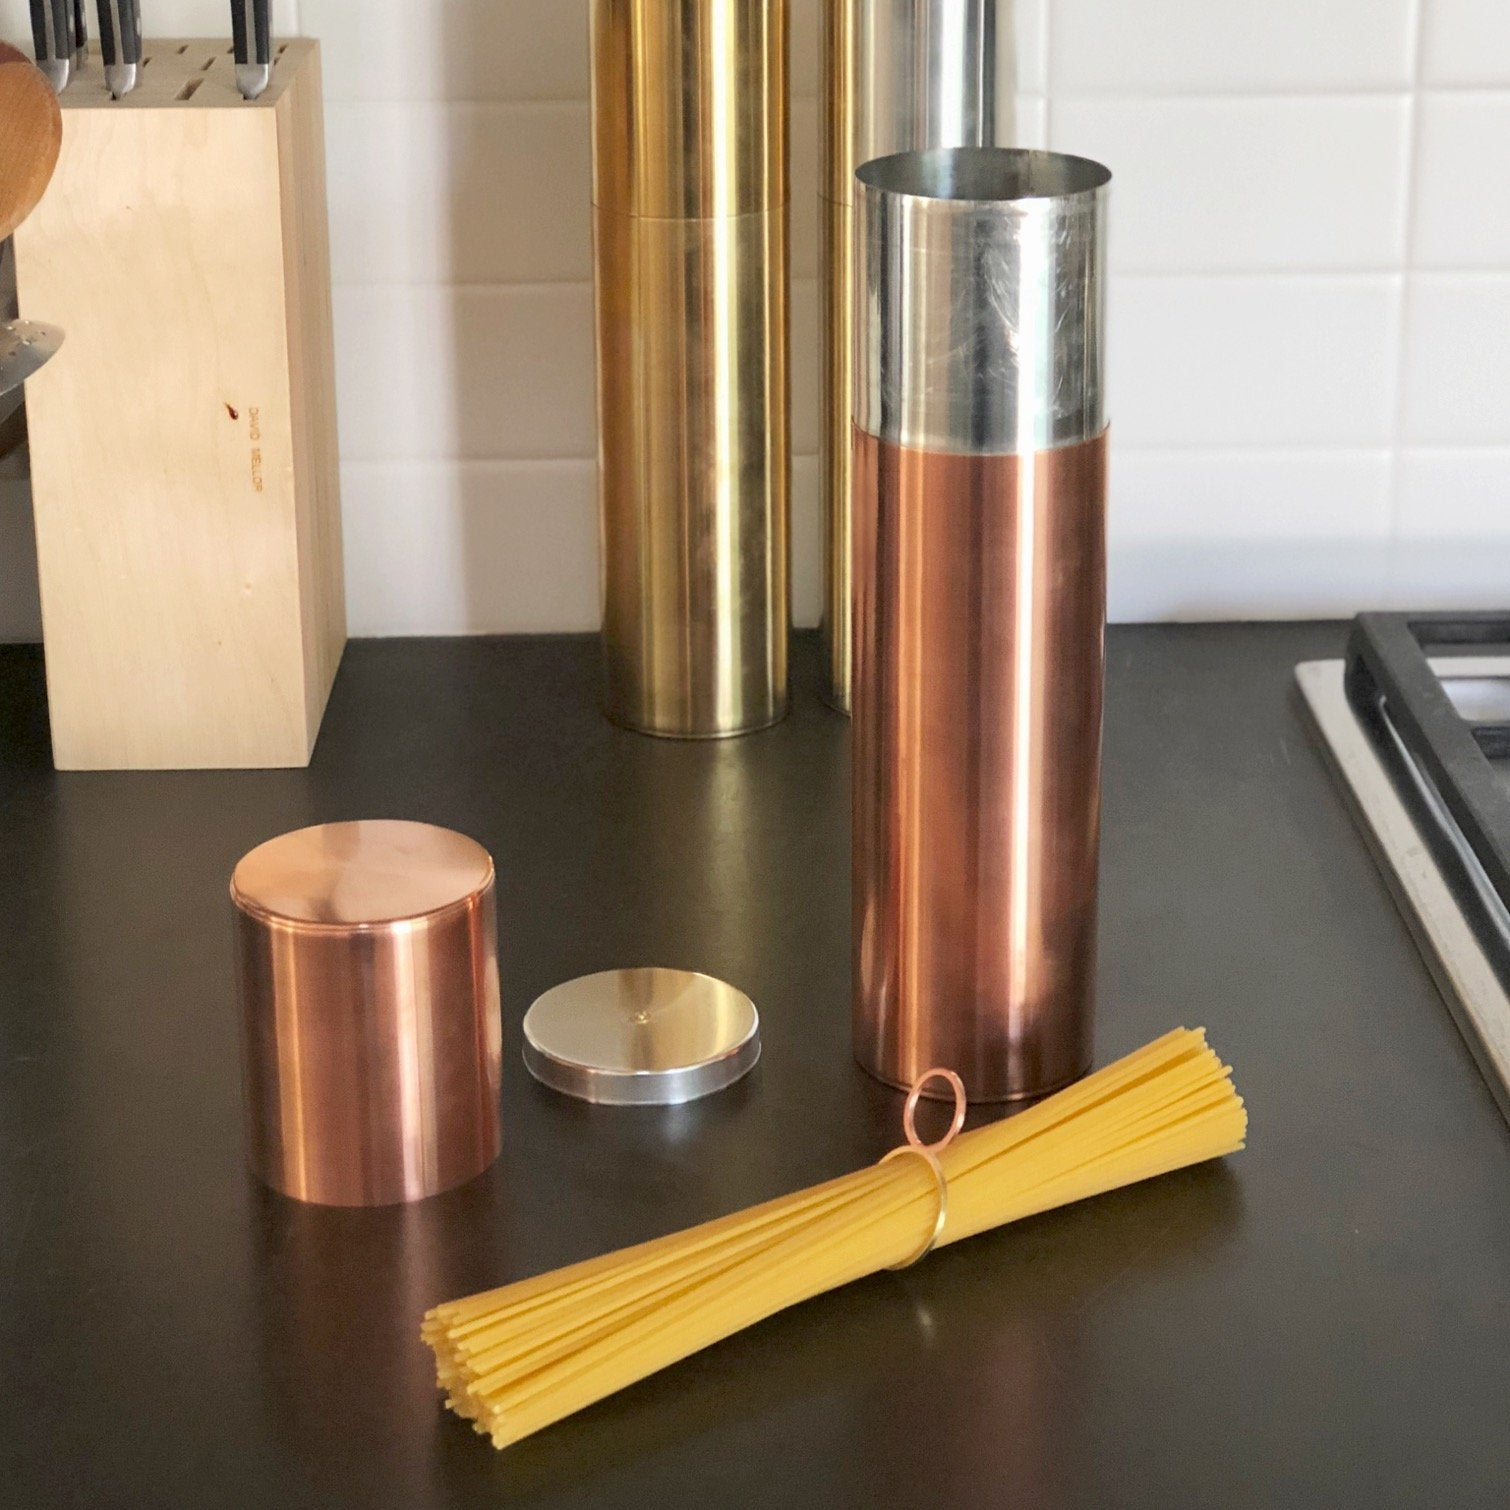 Copper Kaikado Pasta Canister with Pasta Measure - tortoise general store